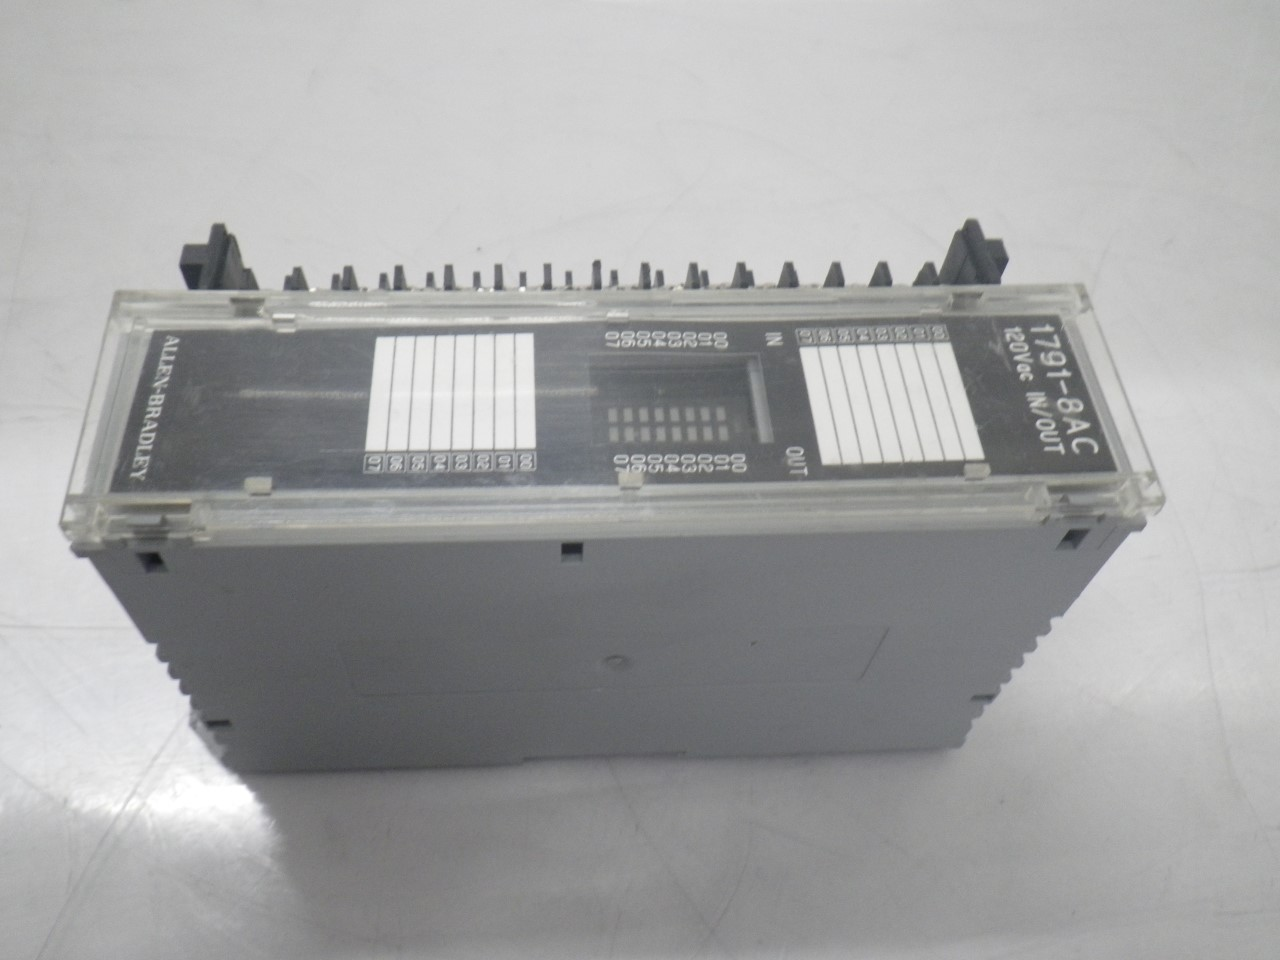 IMGP83251791-8AC Allen Bradley 1791-8ac Series b Block Io Module 120v (Used Tested) (6)